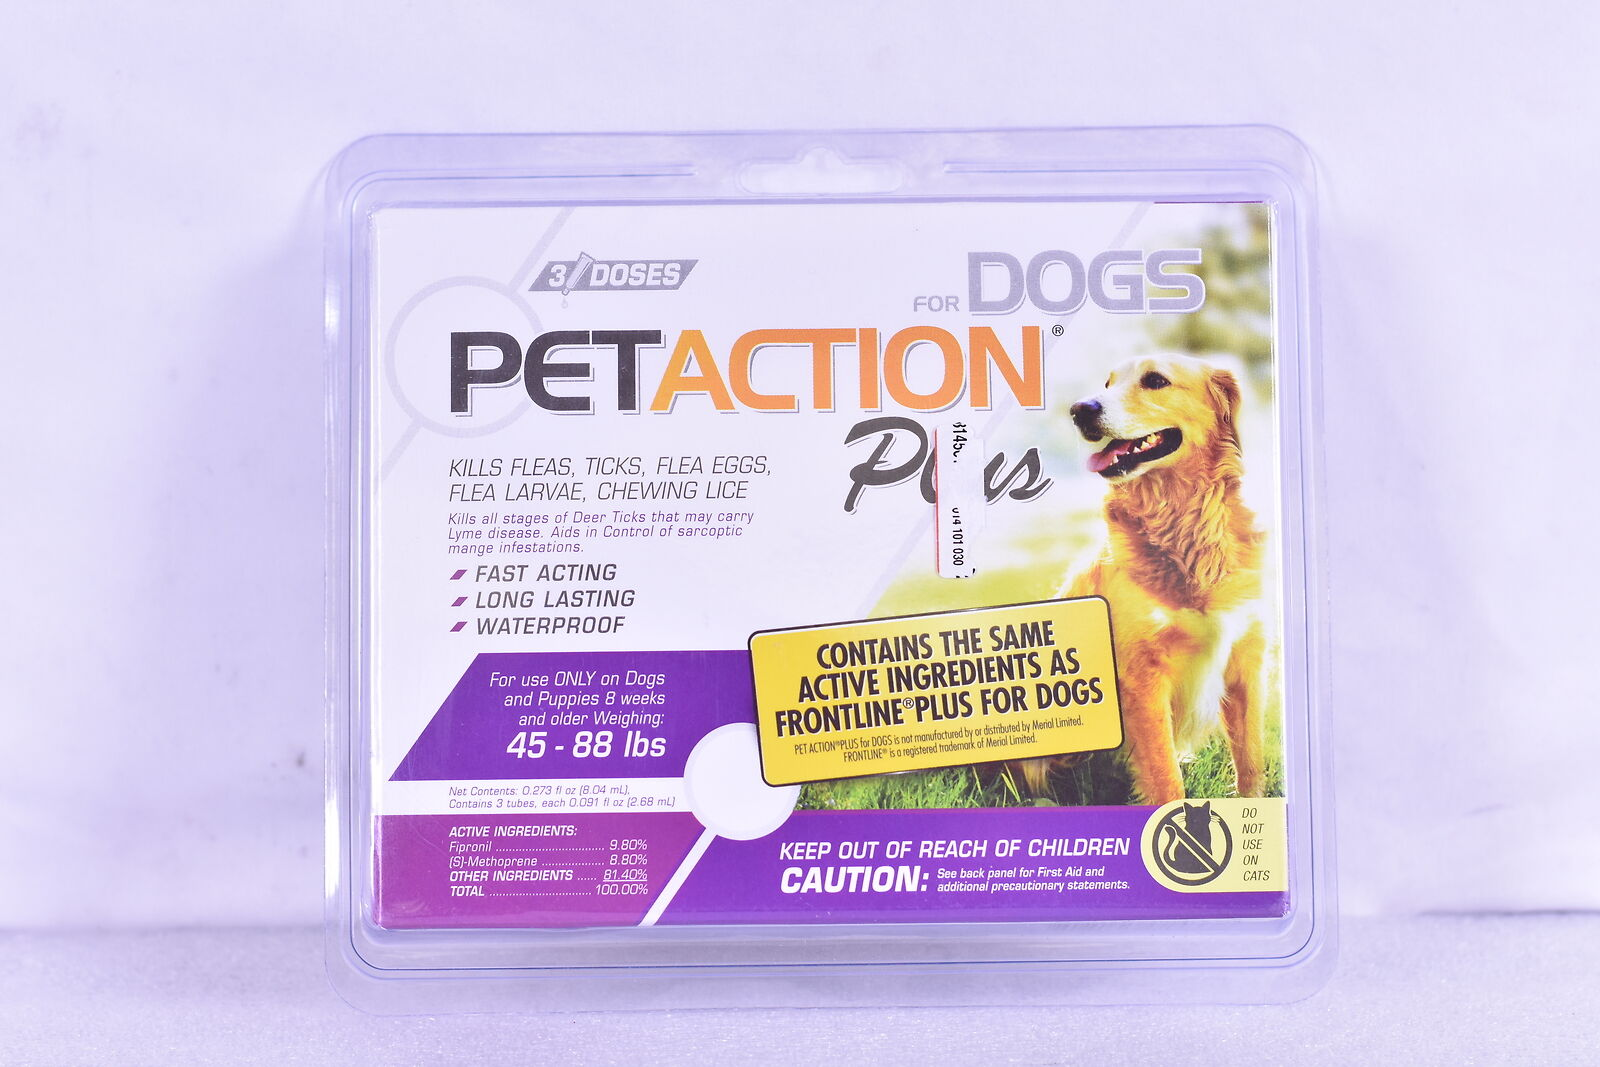 6 Doses Large Dogs 45-88 Lbs. Pet Action Plus for Dogs